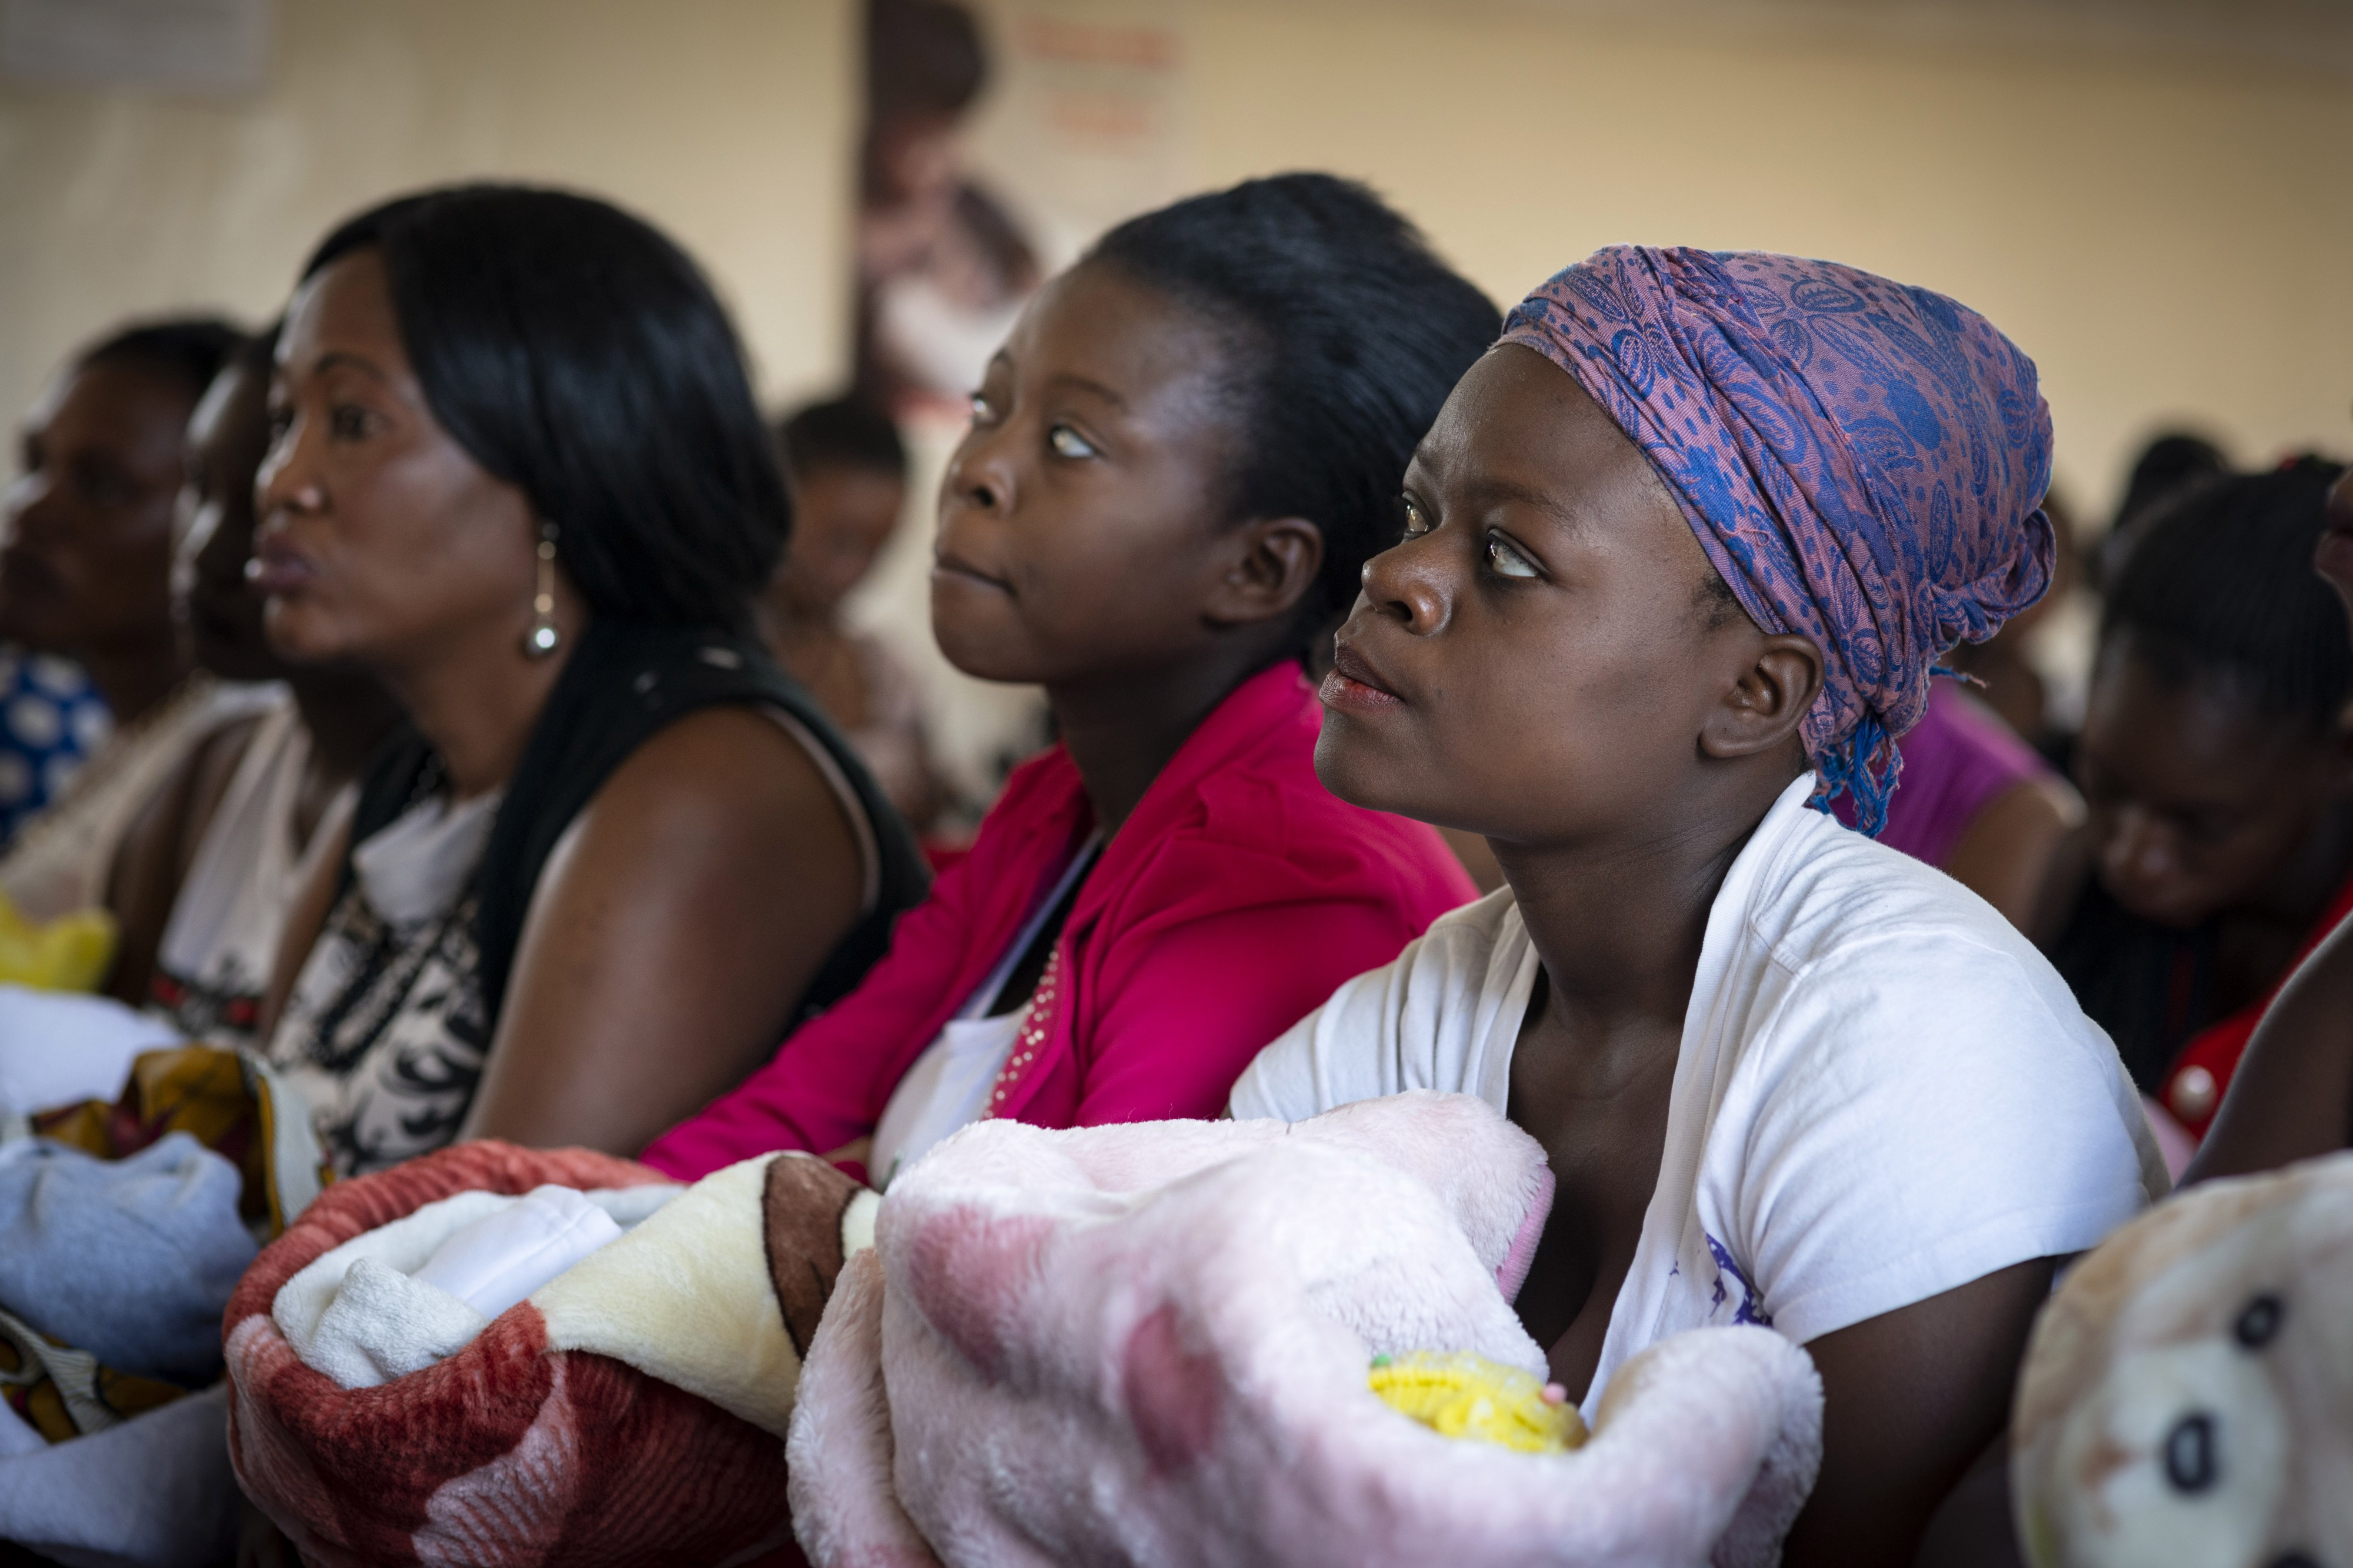 Group of women holding babes in arms. Image credit: Safe Motherhood Alliance